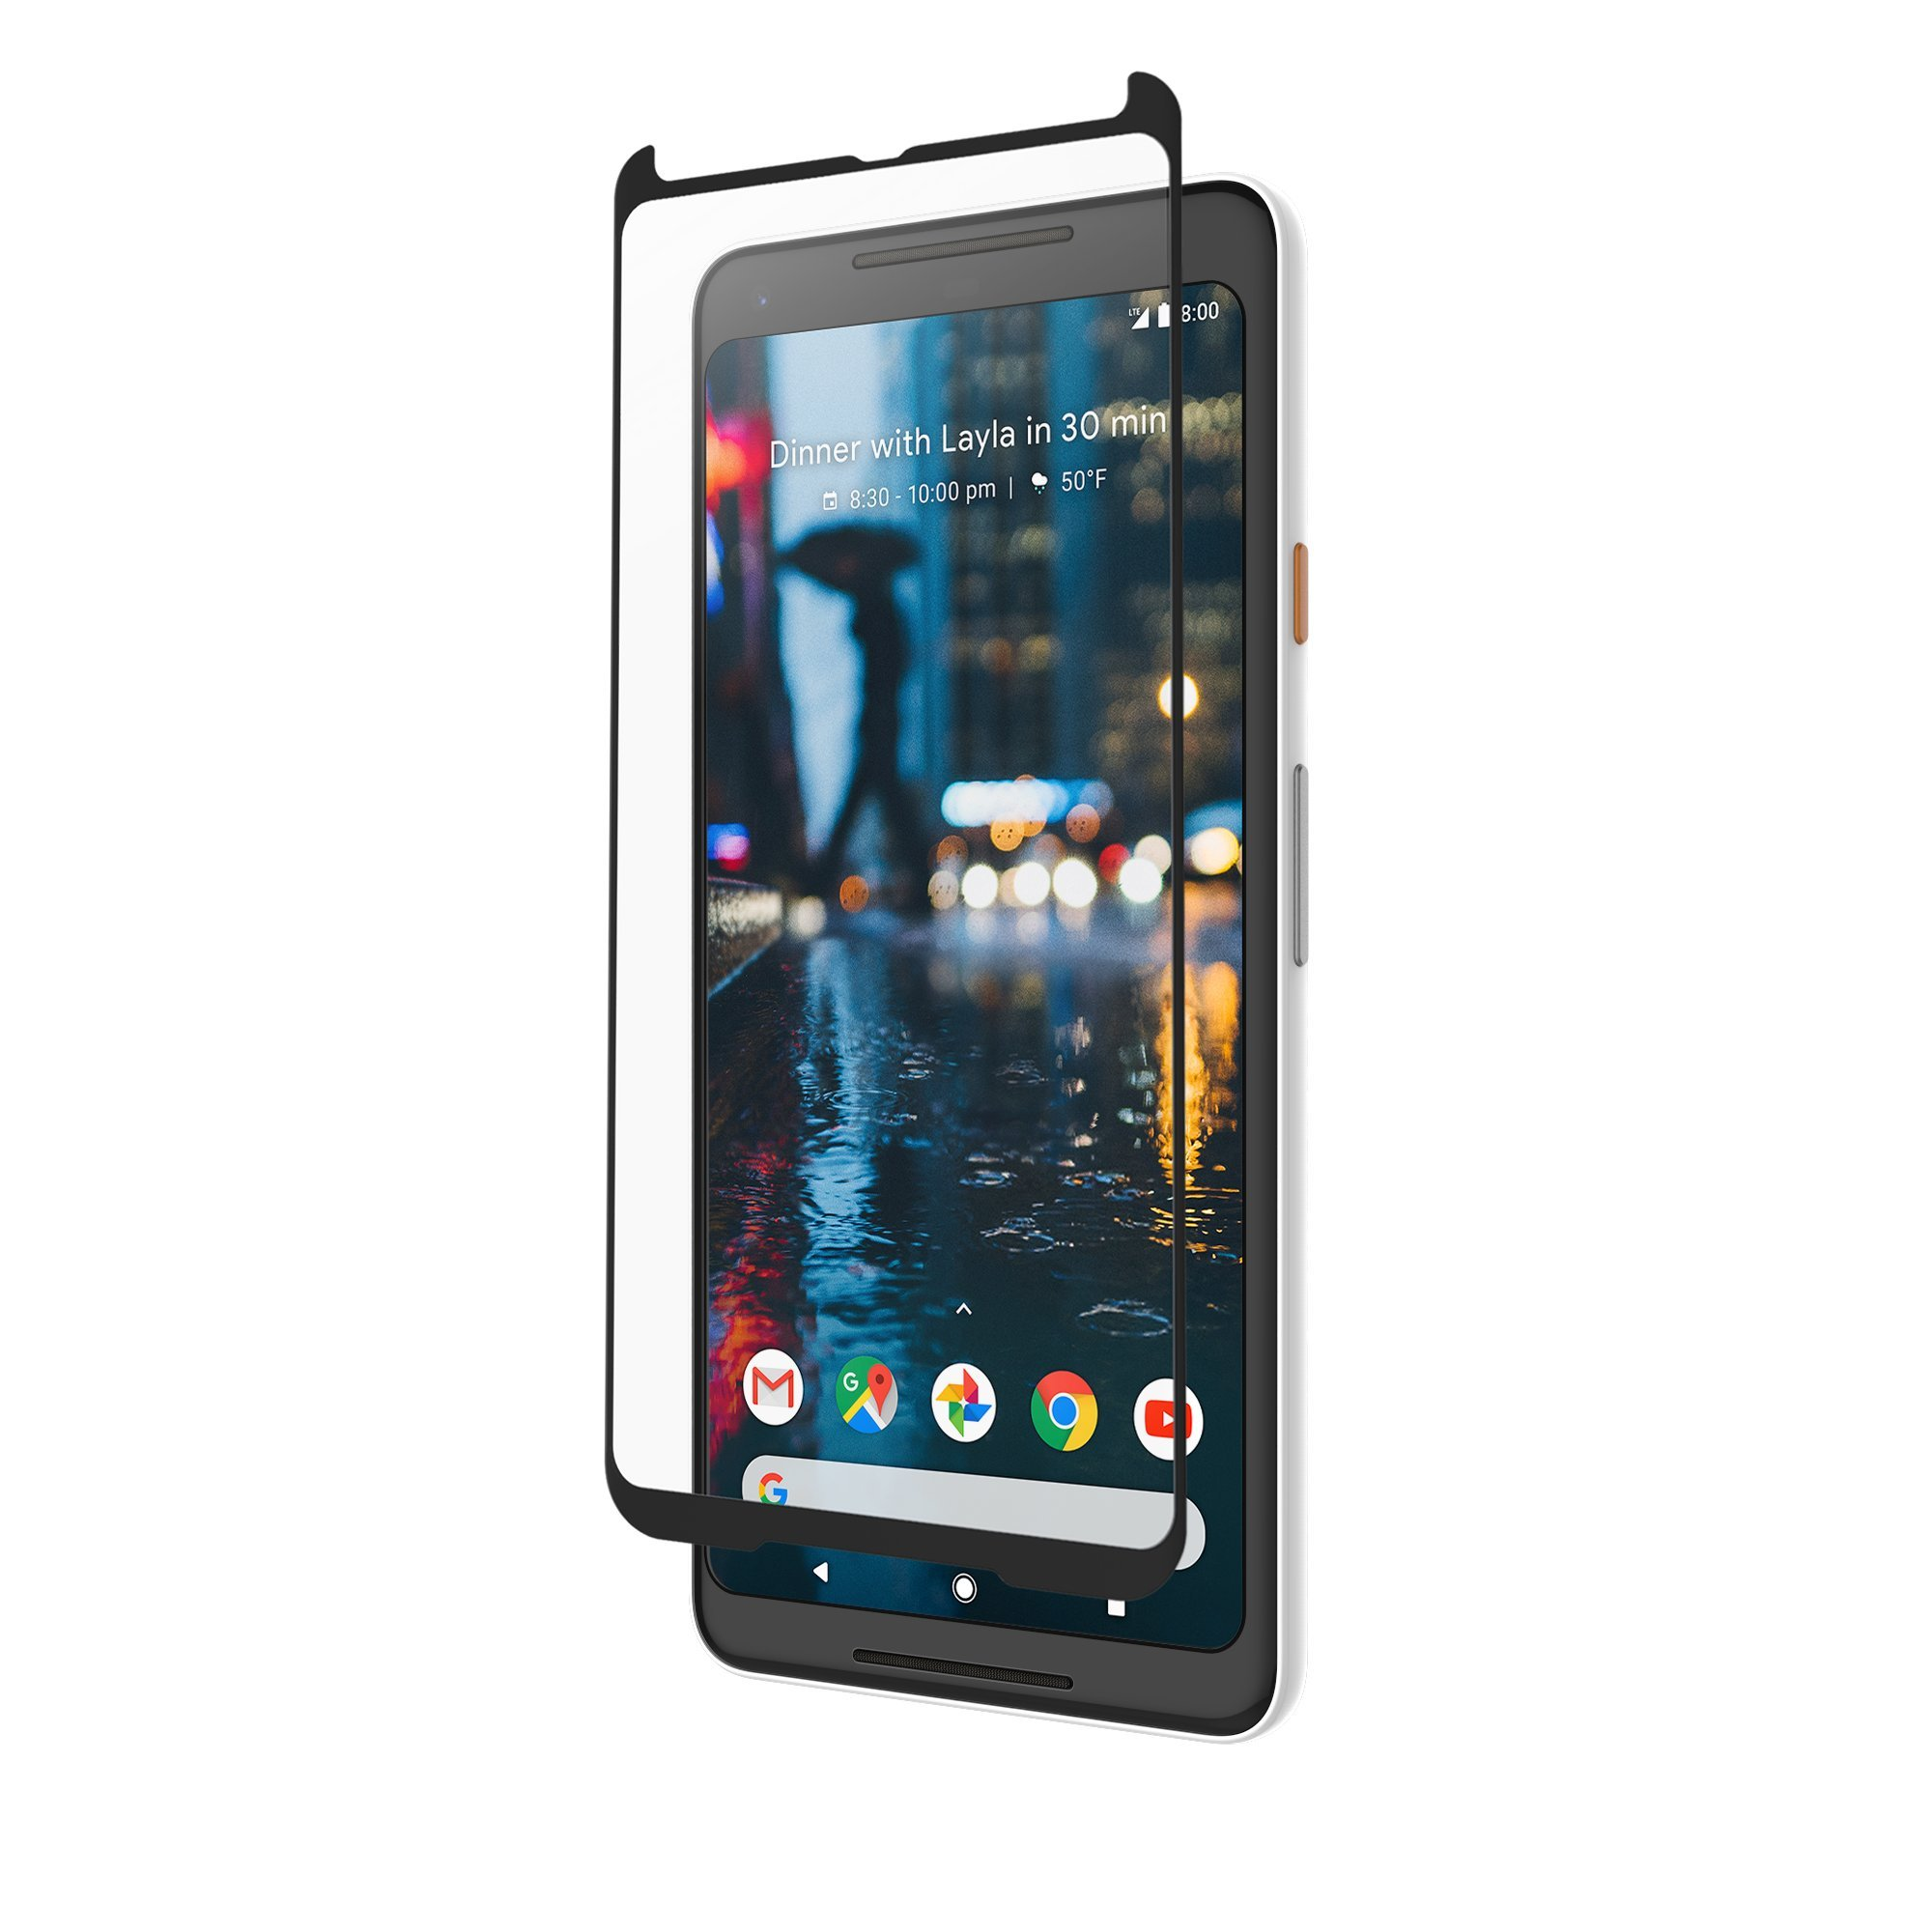 ZAGG InvisibleShield Glass Curved Screen Protector - Curved for The Google Pixel 2 XL -Impact & Scratch Protection - Smudge Resistant - Clear by ZAGG (Image #4)